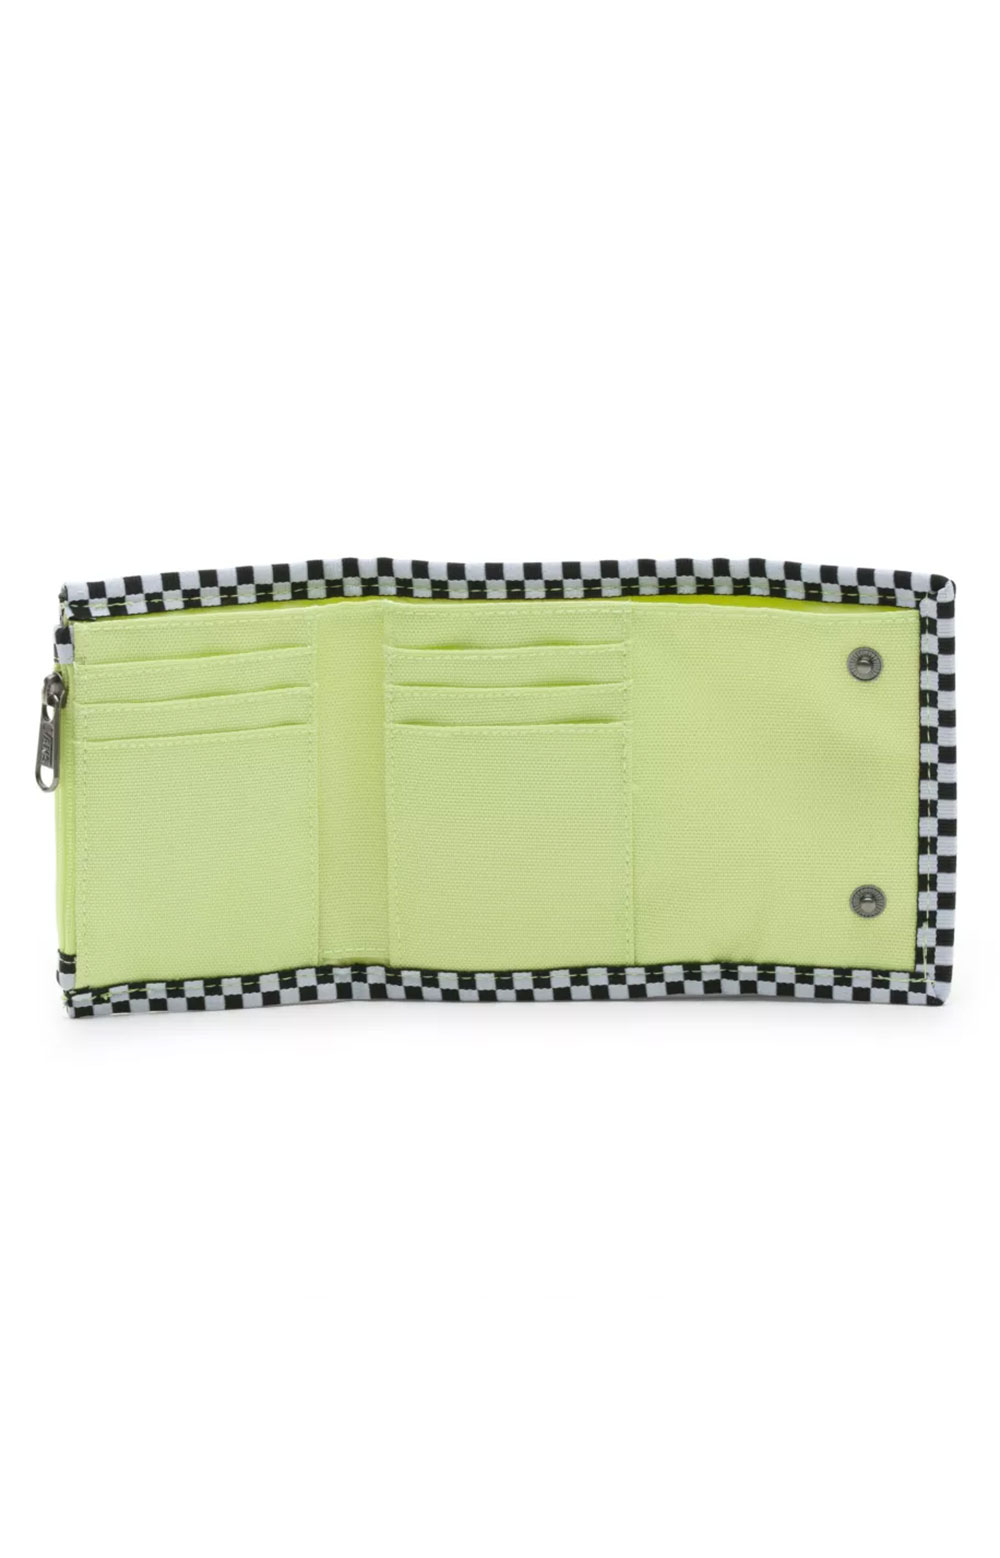 Cash Flow Wallet - Sunny Lime 3